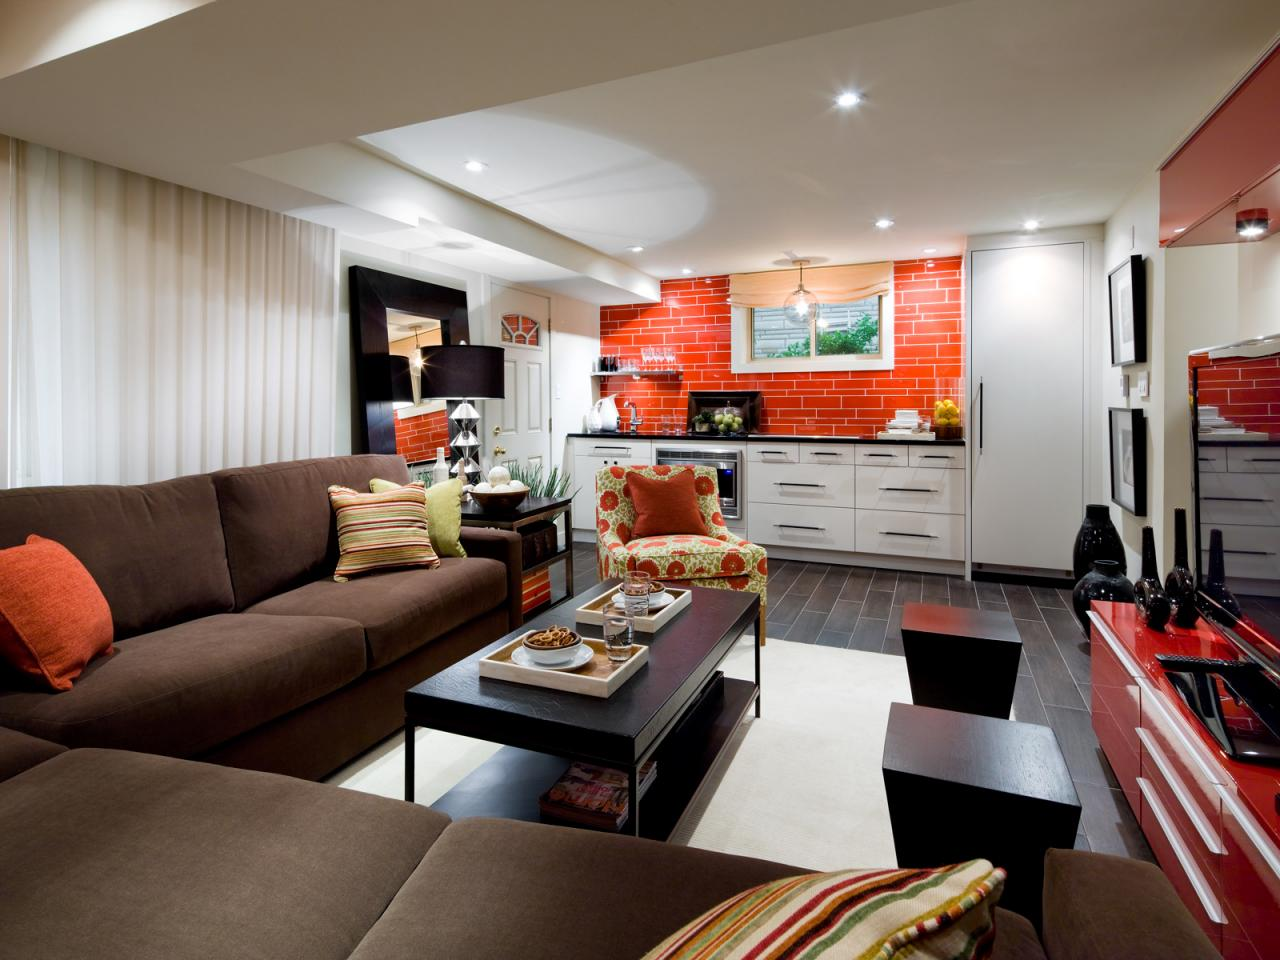 Home Basement Designs Impressive Basement Design And Layout  Hgtv Inspiration Design